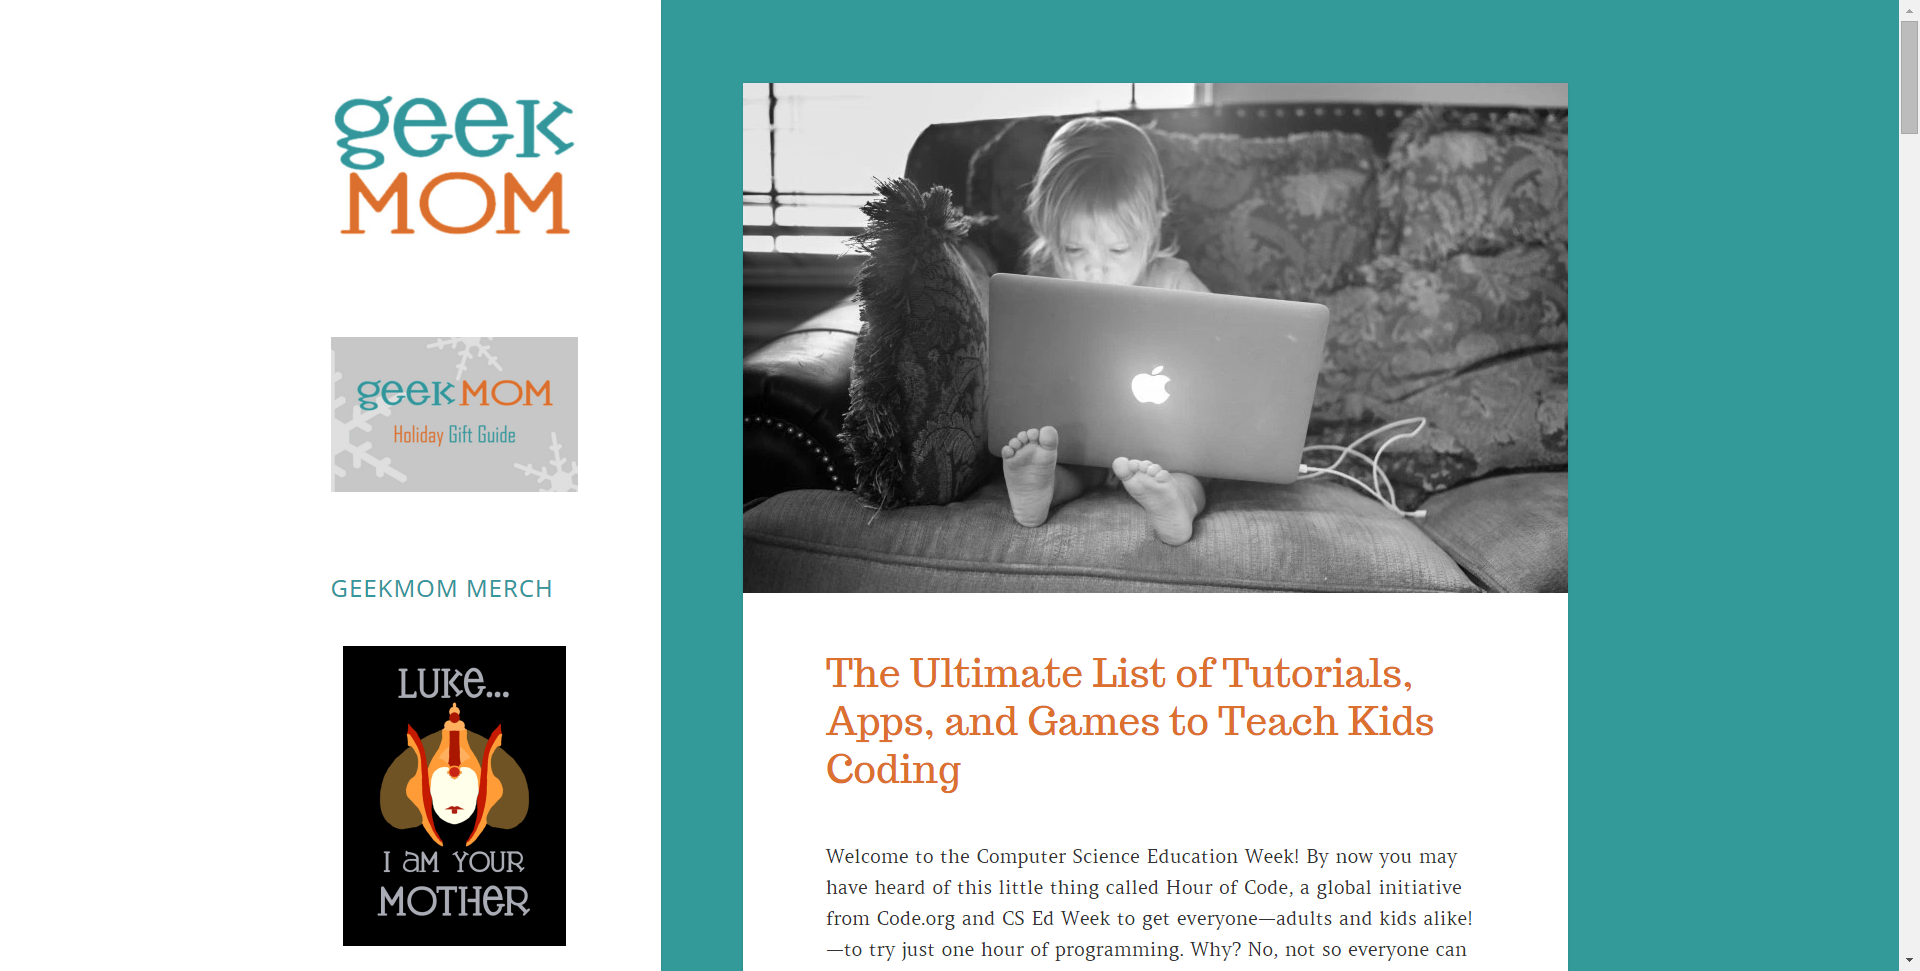 The Ultimate List of Tutorials, Apps, and Games to Teach